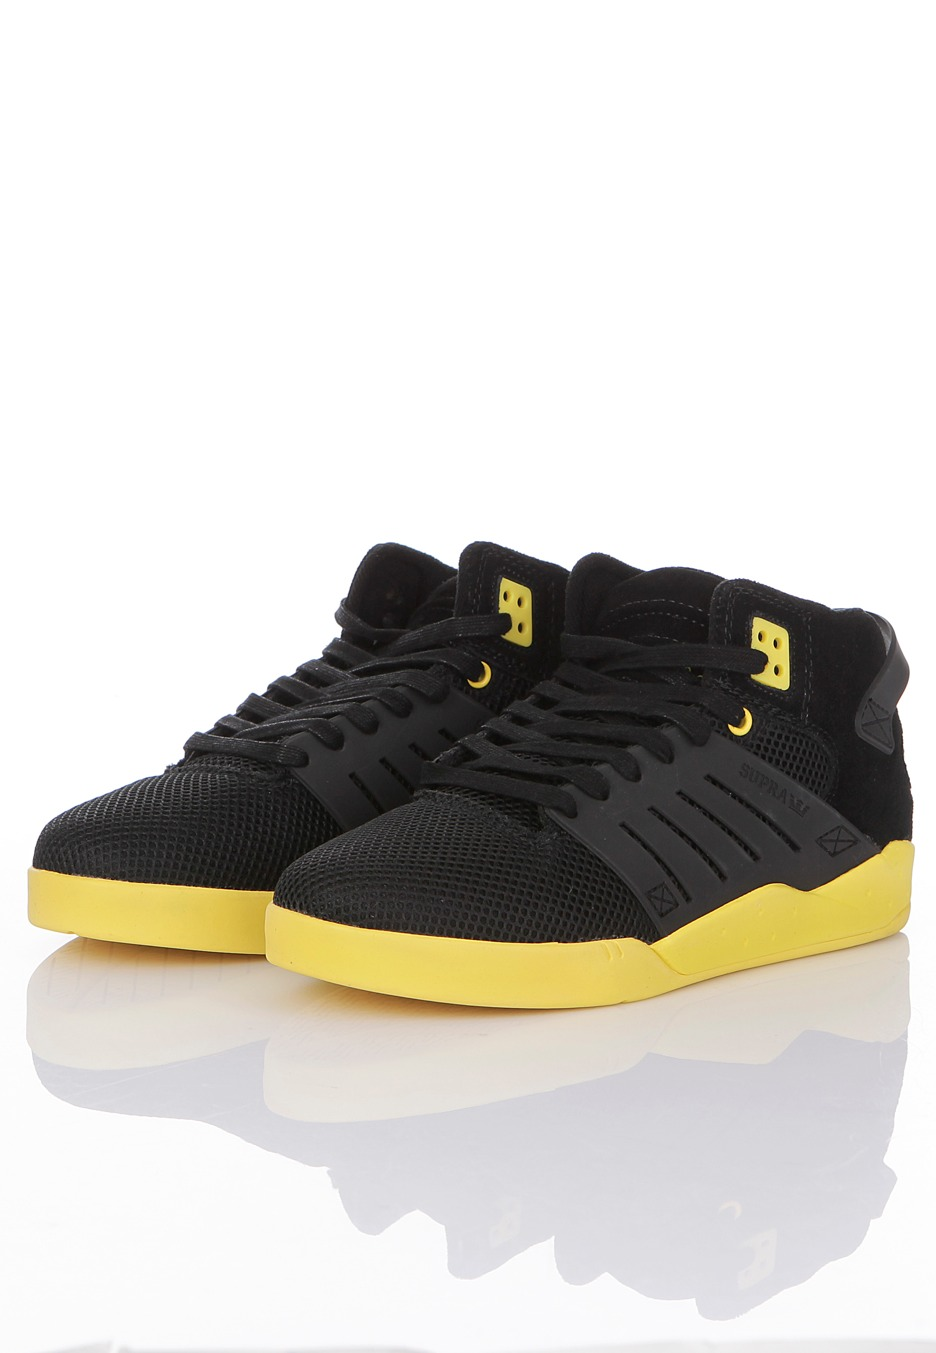 Supra - Skytop III Mid Black Mesh/Neon Yellow - Shoes ...